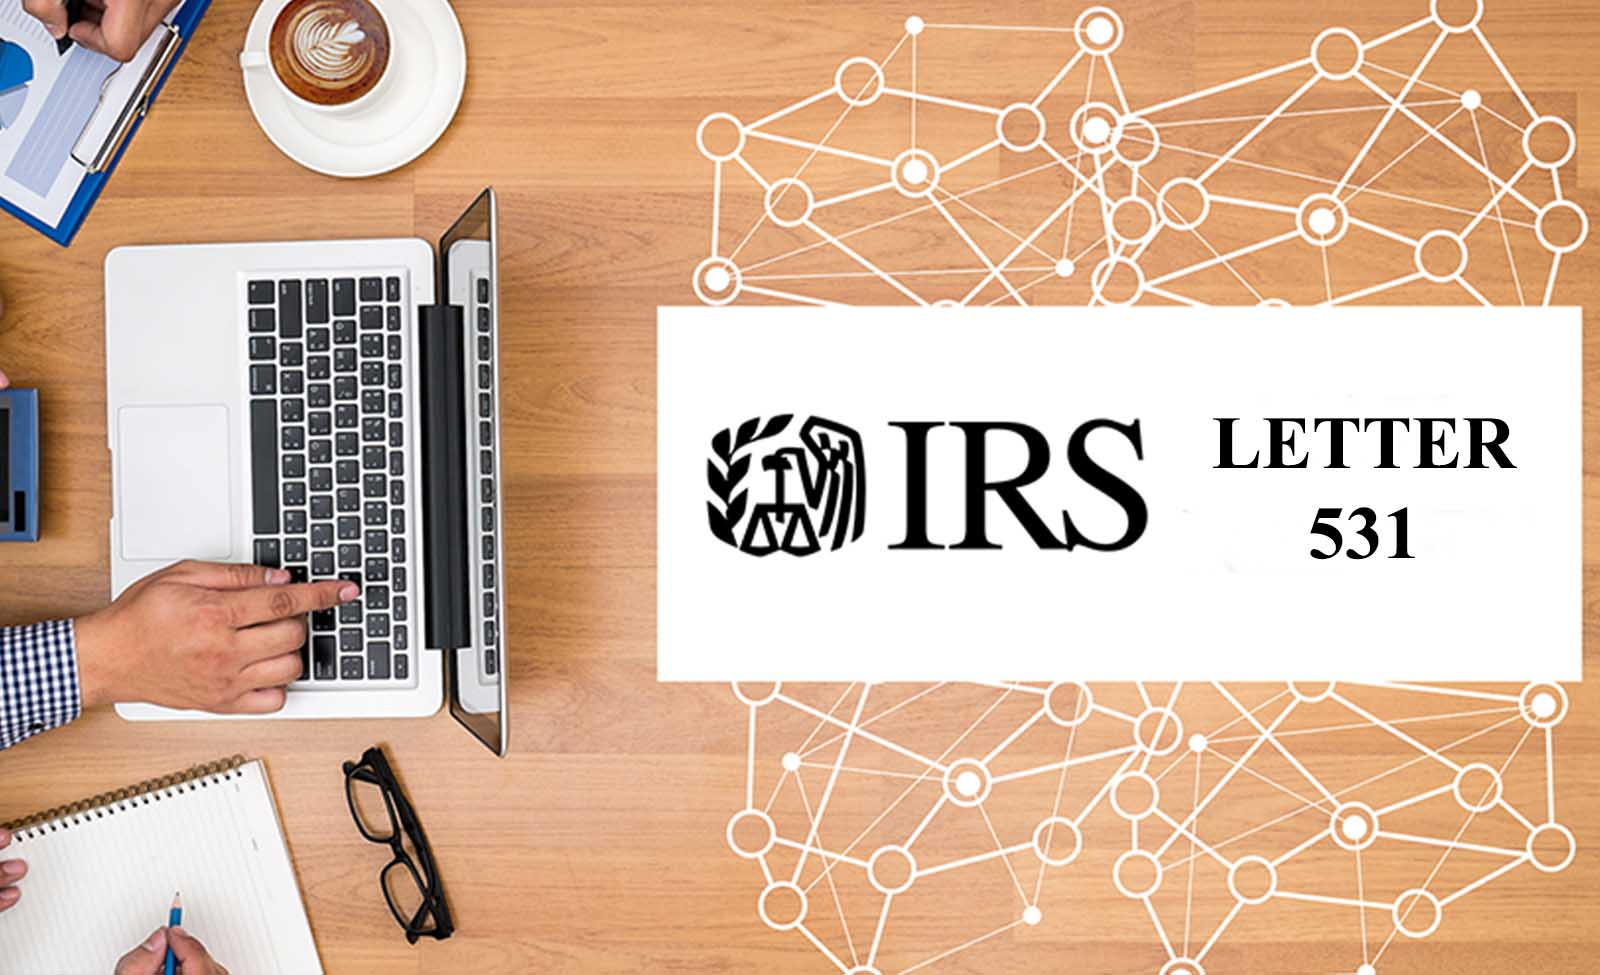 How to Respond to IRS Letter 531